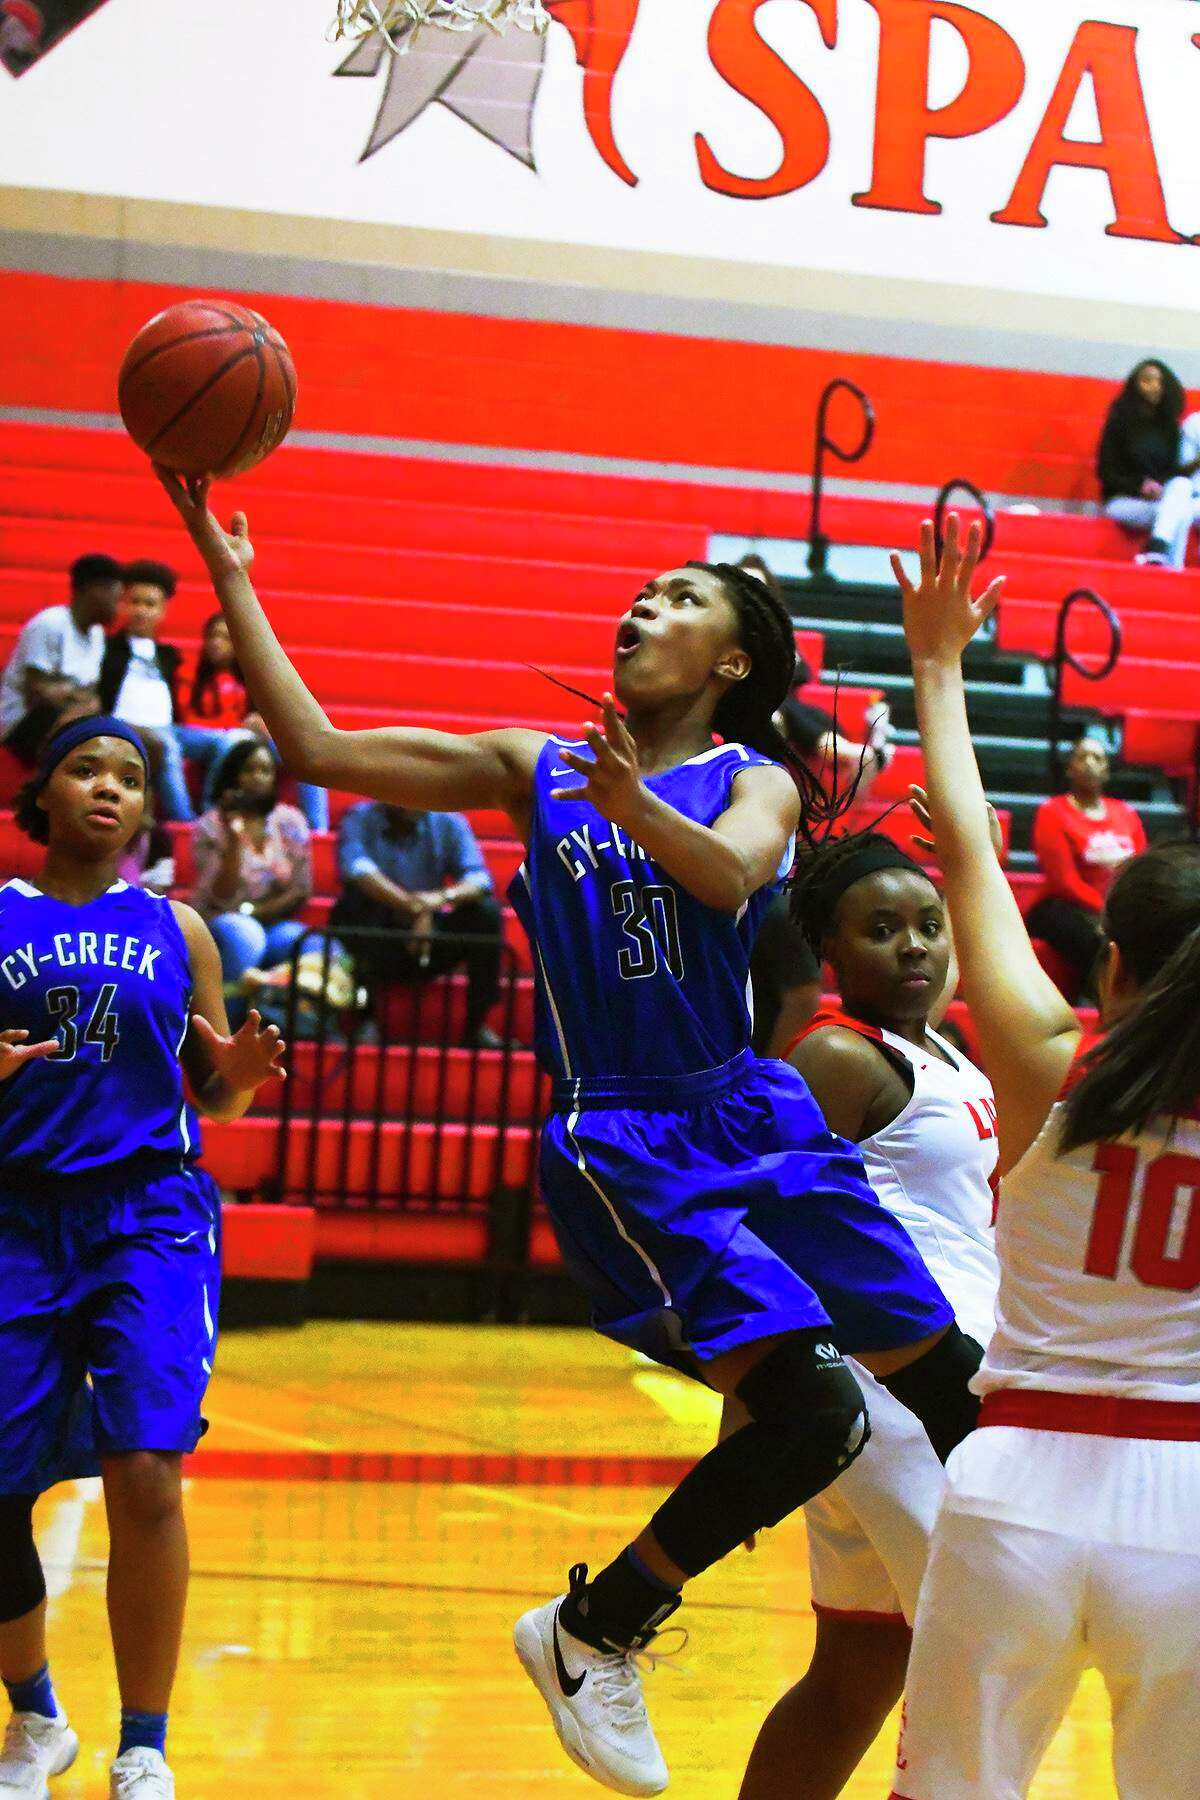 Cy-Creek (30) Kyndall Hunter made some acrobatic fast break moves to the basketball to help her team defeat Cy-Lakes and win the Cypress District Championship.